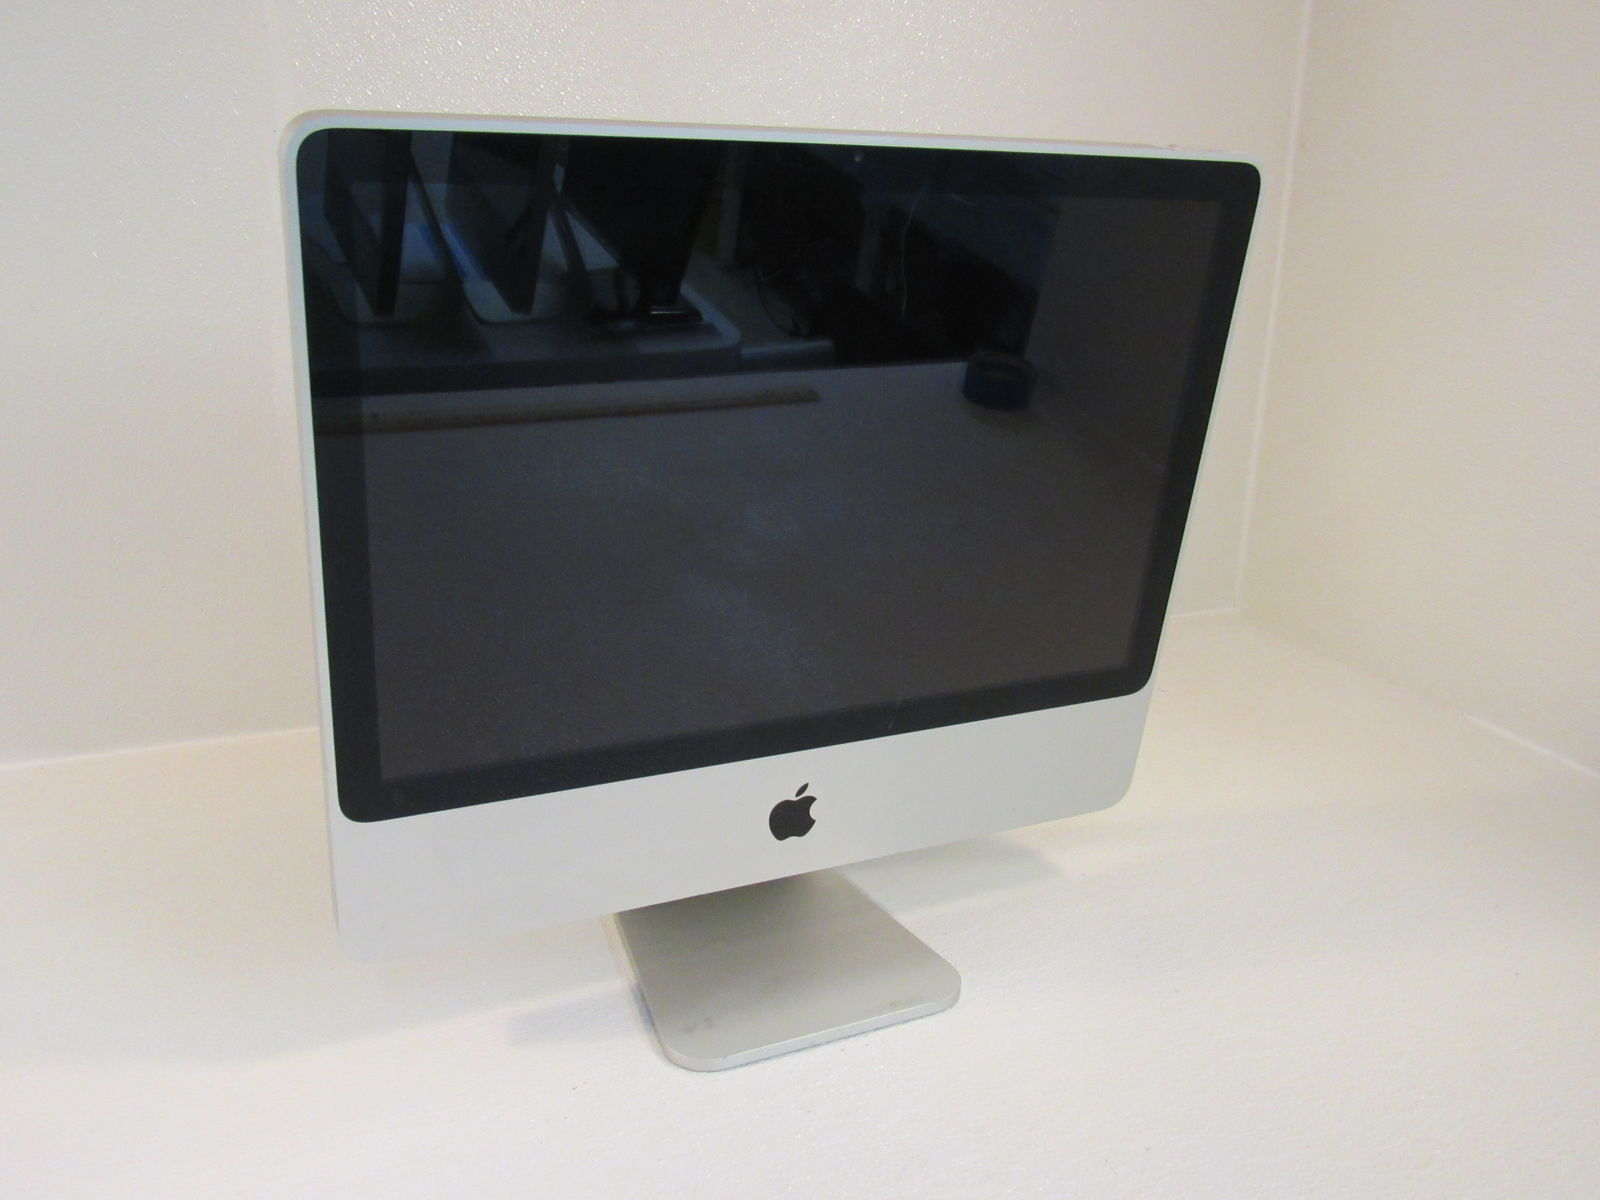 Apple iMac 7.1 20 Inch All In One Computer 500GB HD 2GHz Intel Core 2 Duo A1224